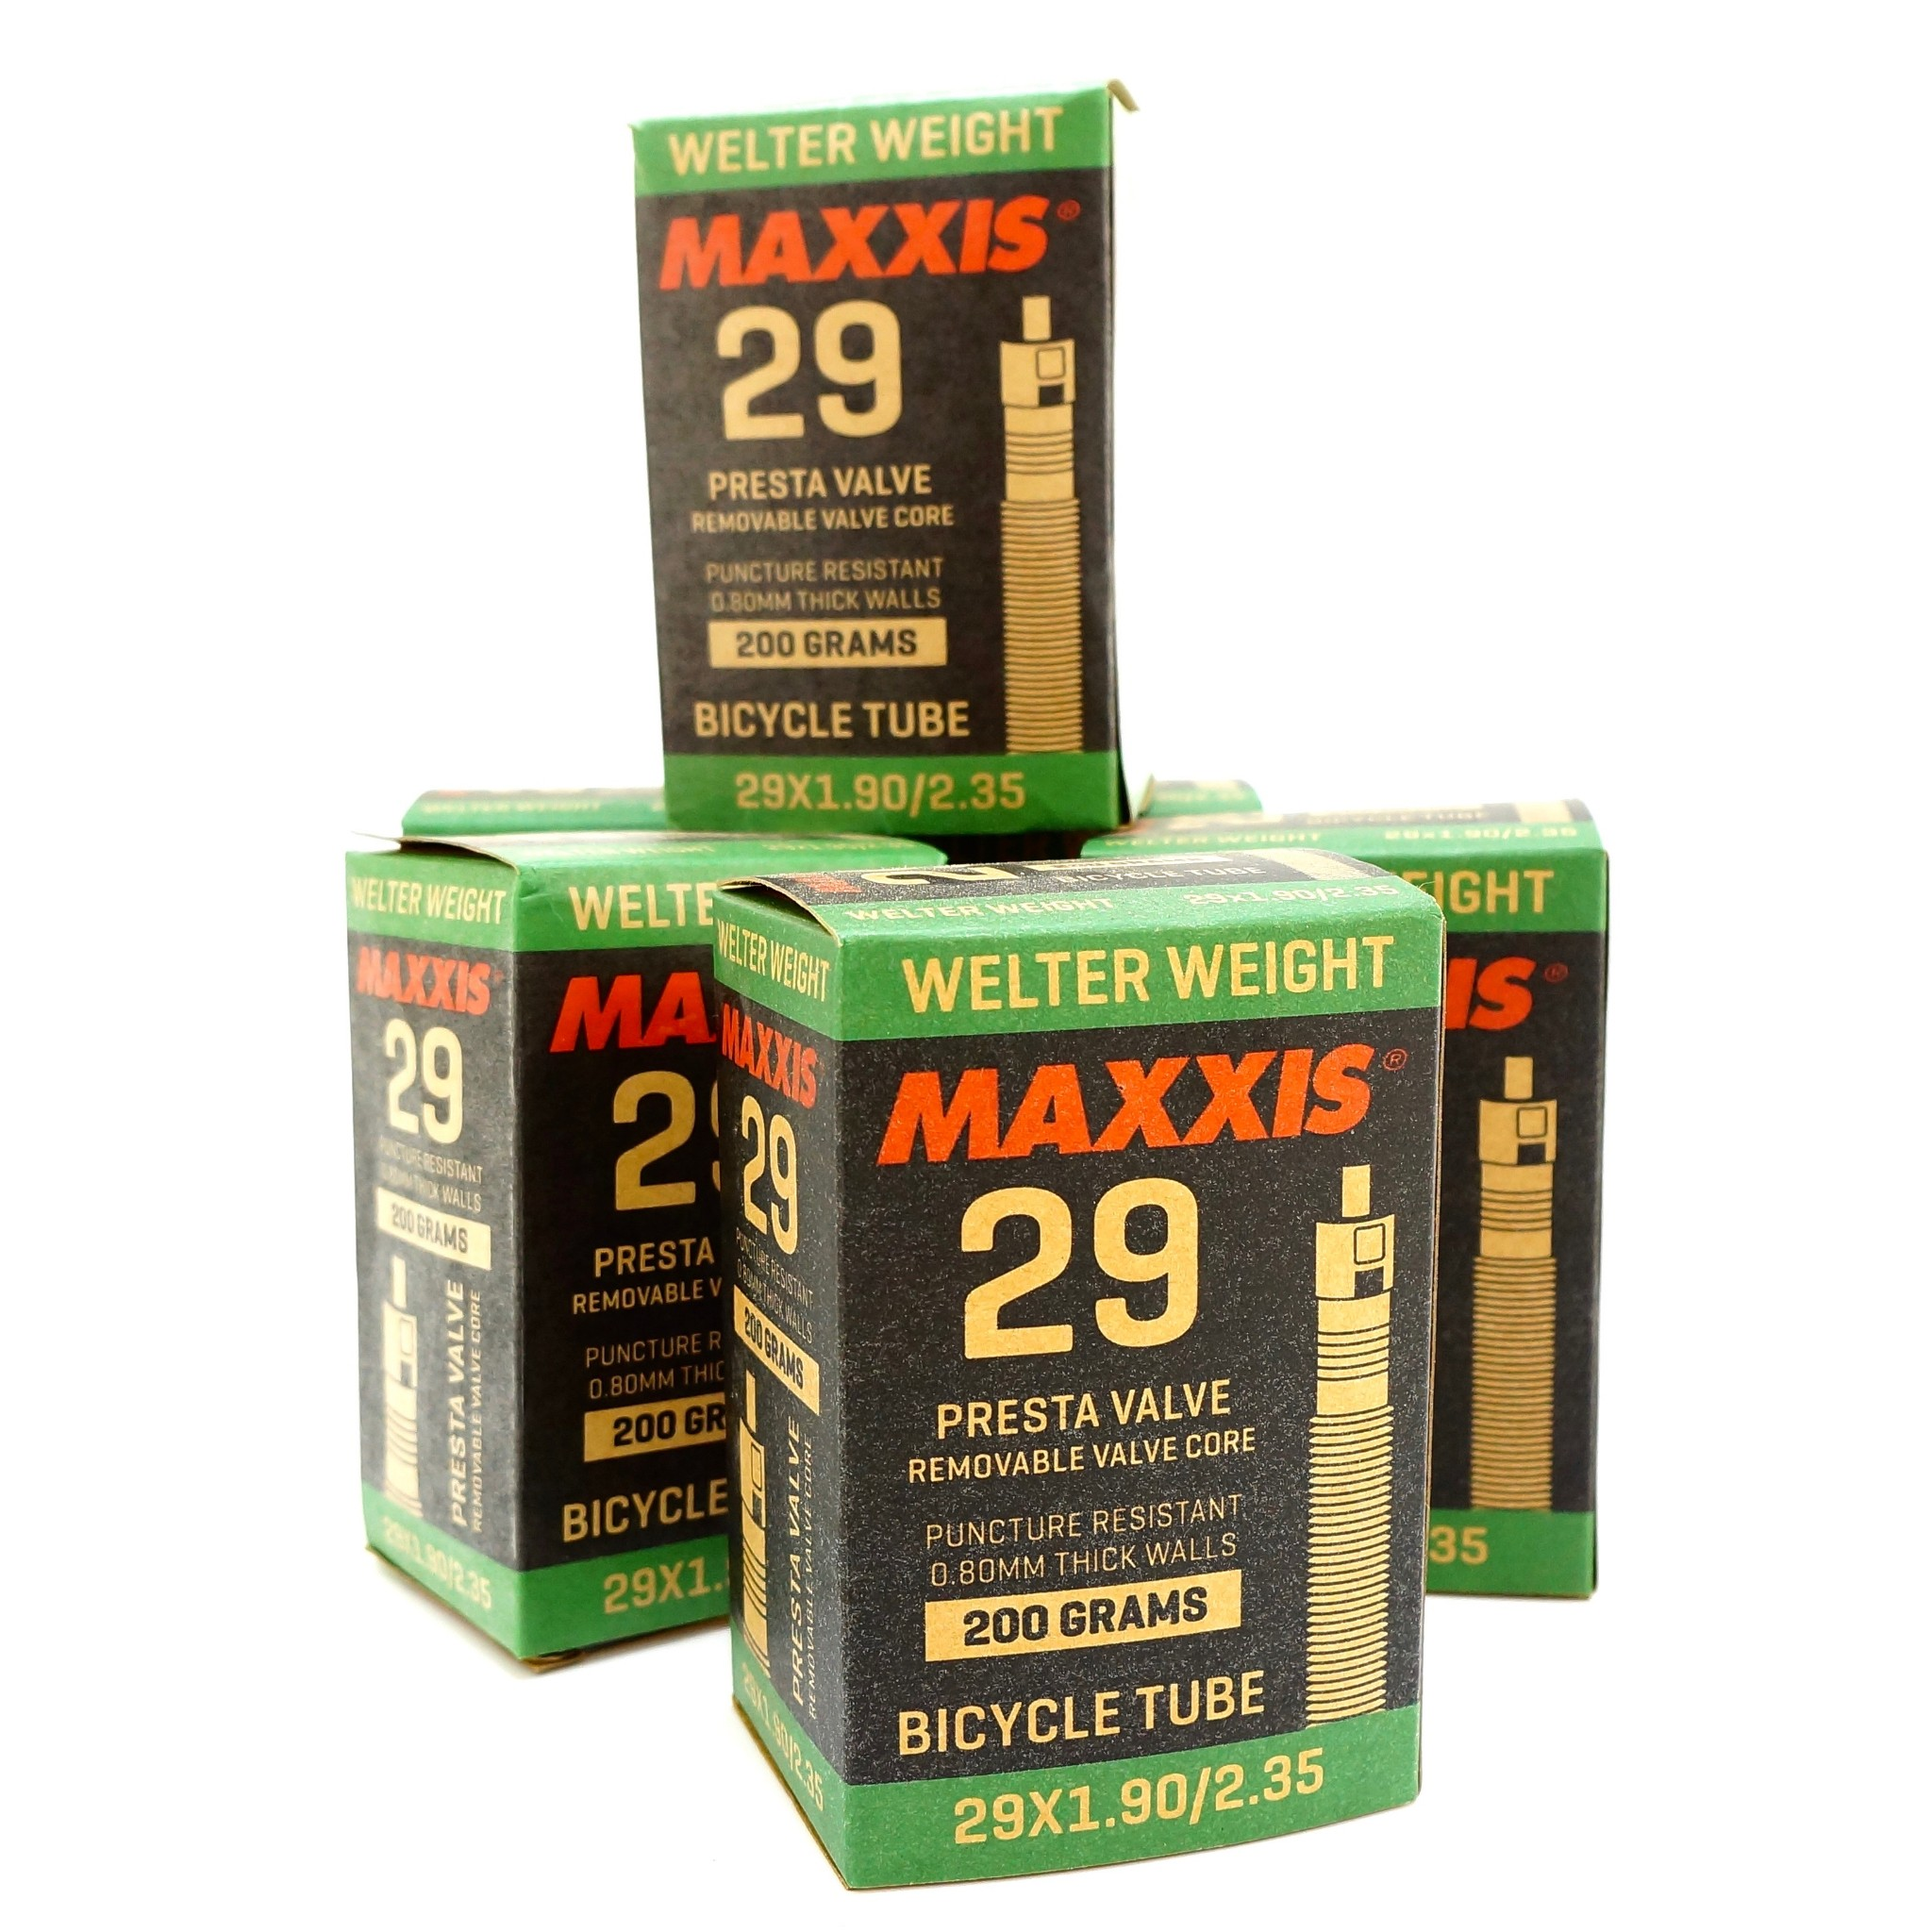 1 to 6 tubes Maxxis Welter Weight 27.5 x 1.90-2.35 Presta Inner Tube 0.8mm thick